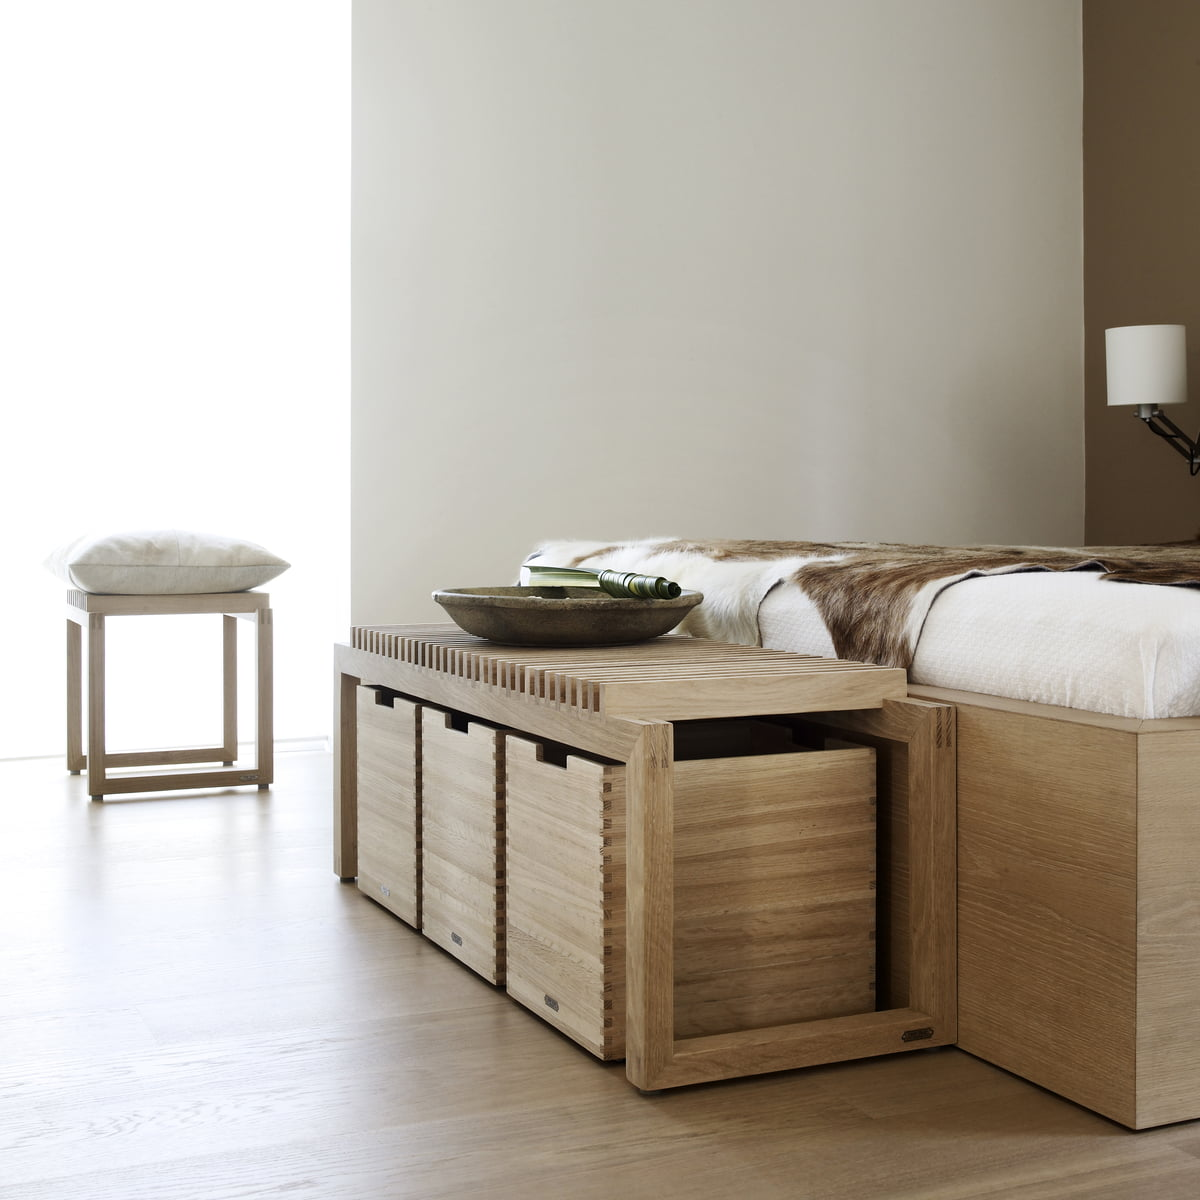 cutter box von skagerak im wohndesign shop. Black Bedroom Furniture Sets. Home Design Ideas